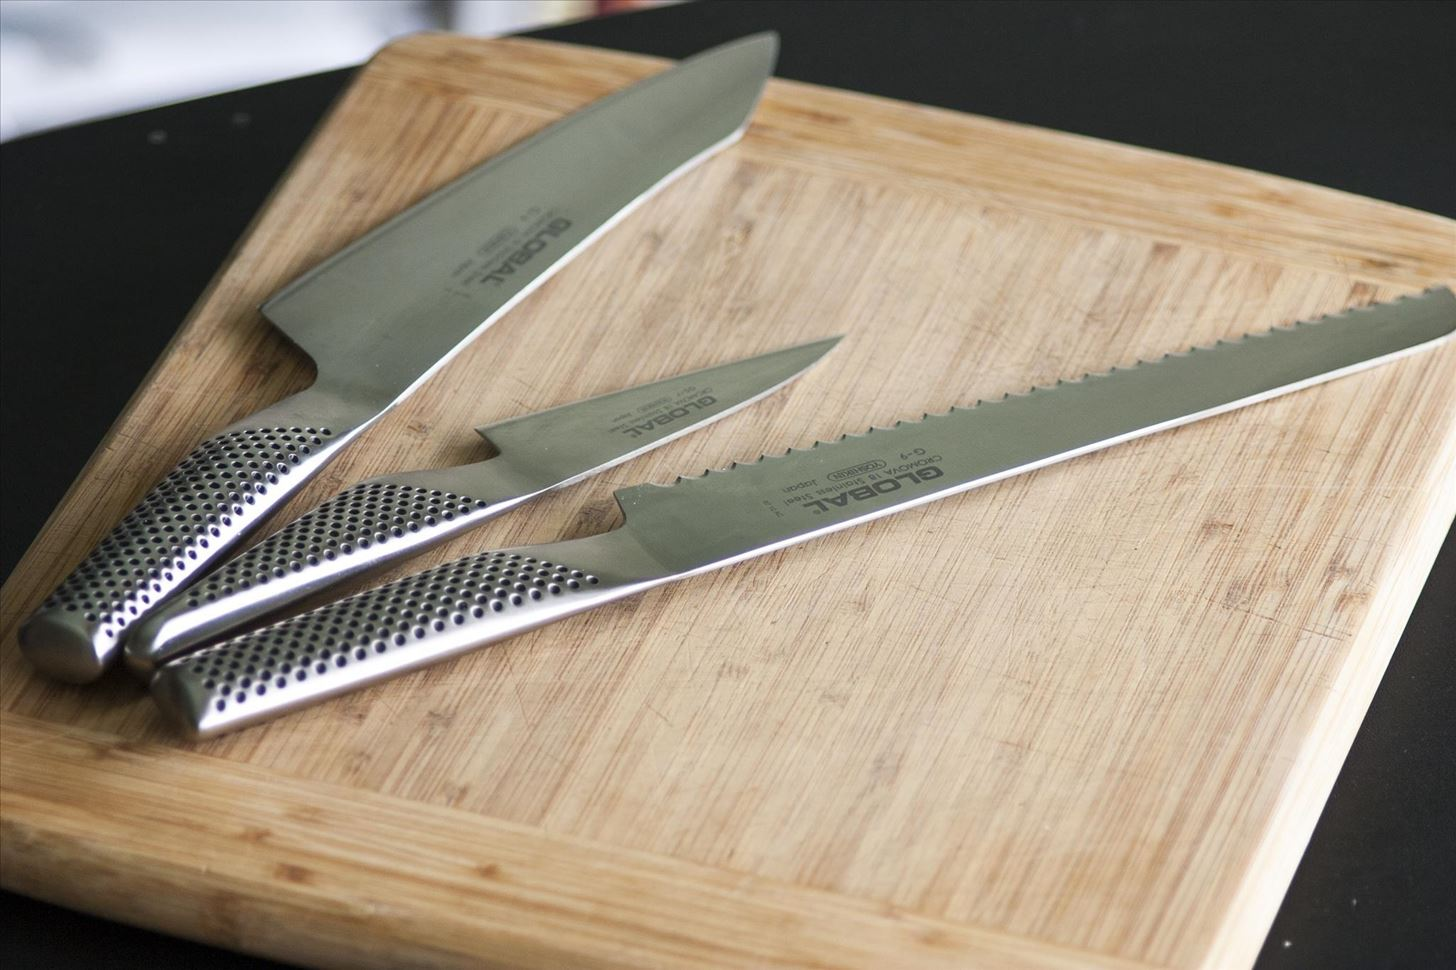 Knives 101: How to Care for Your Knives Like a Pro